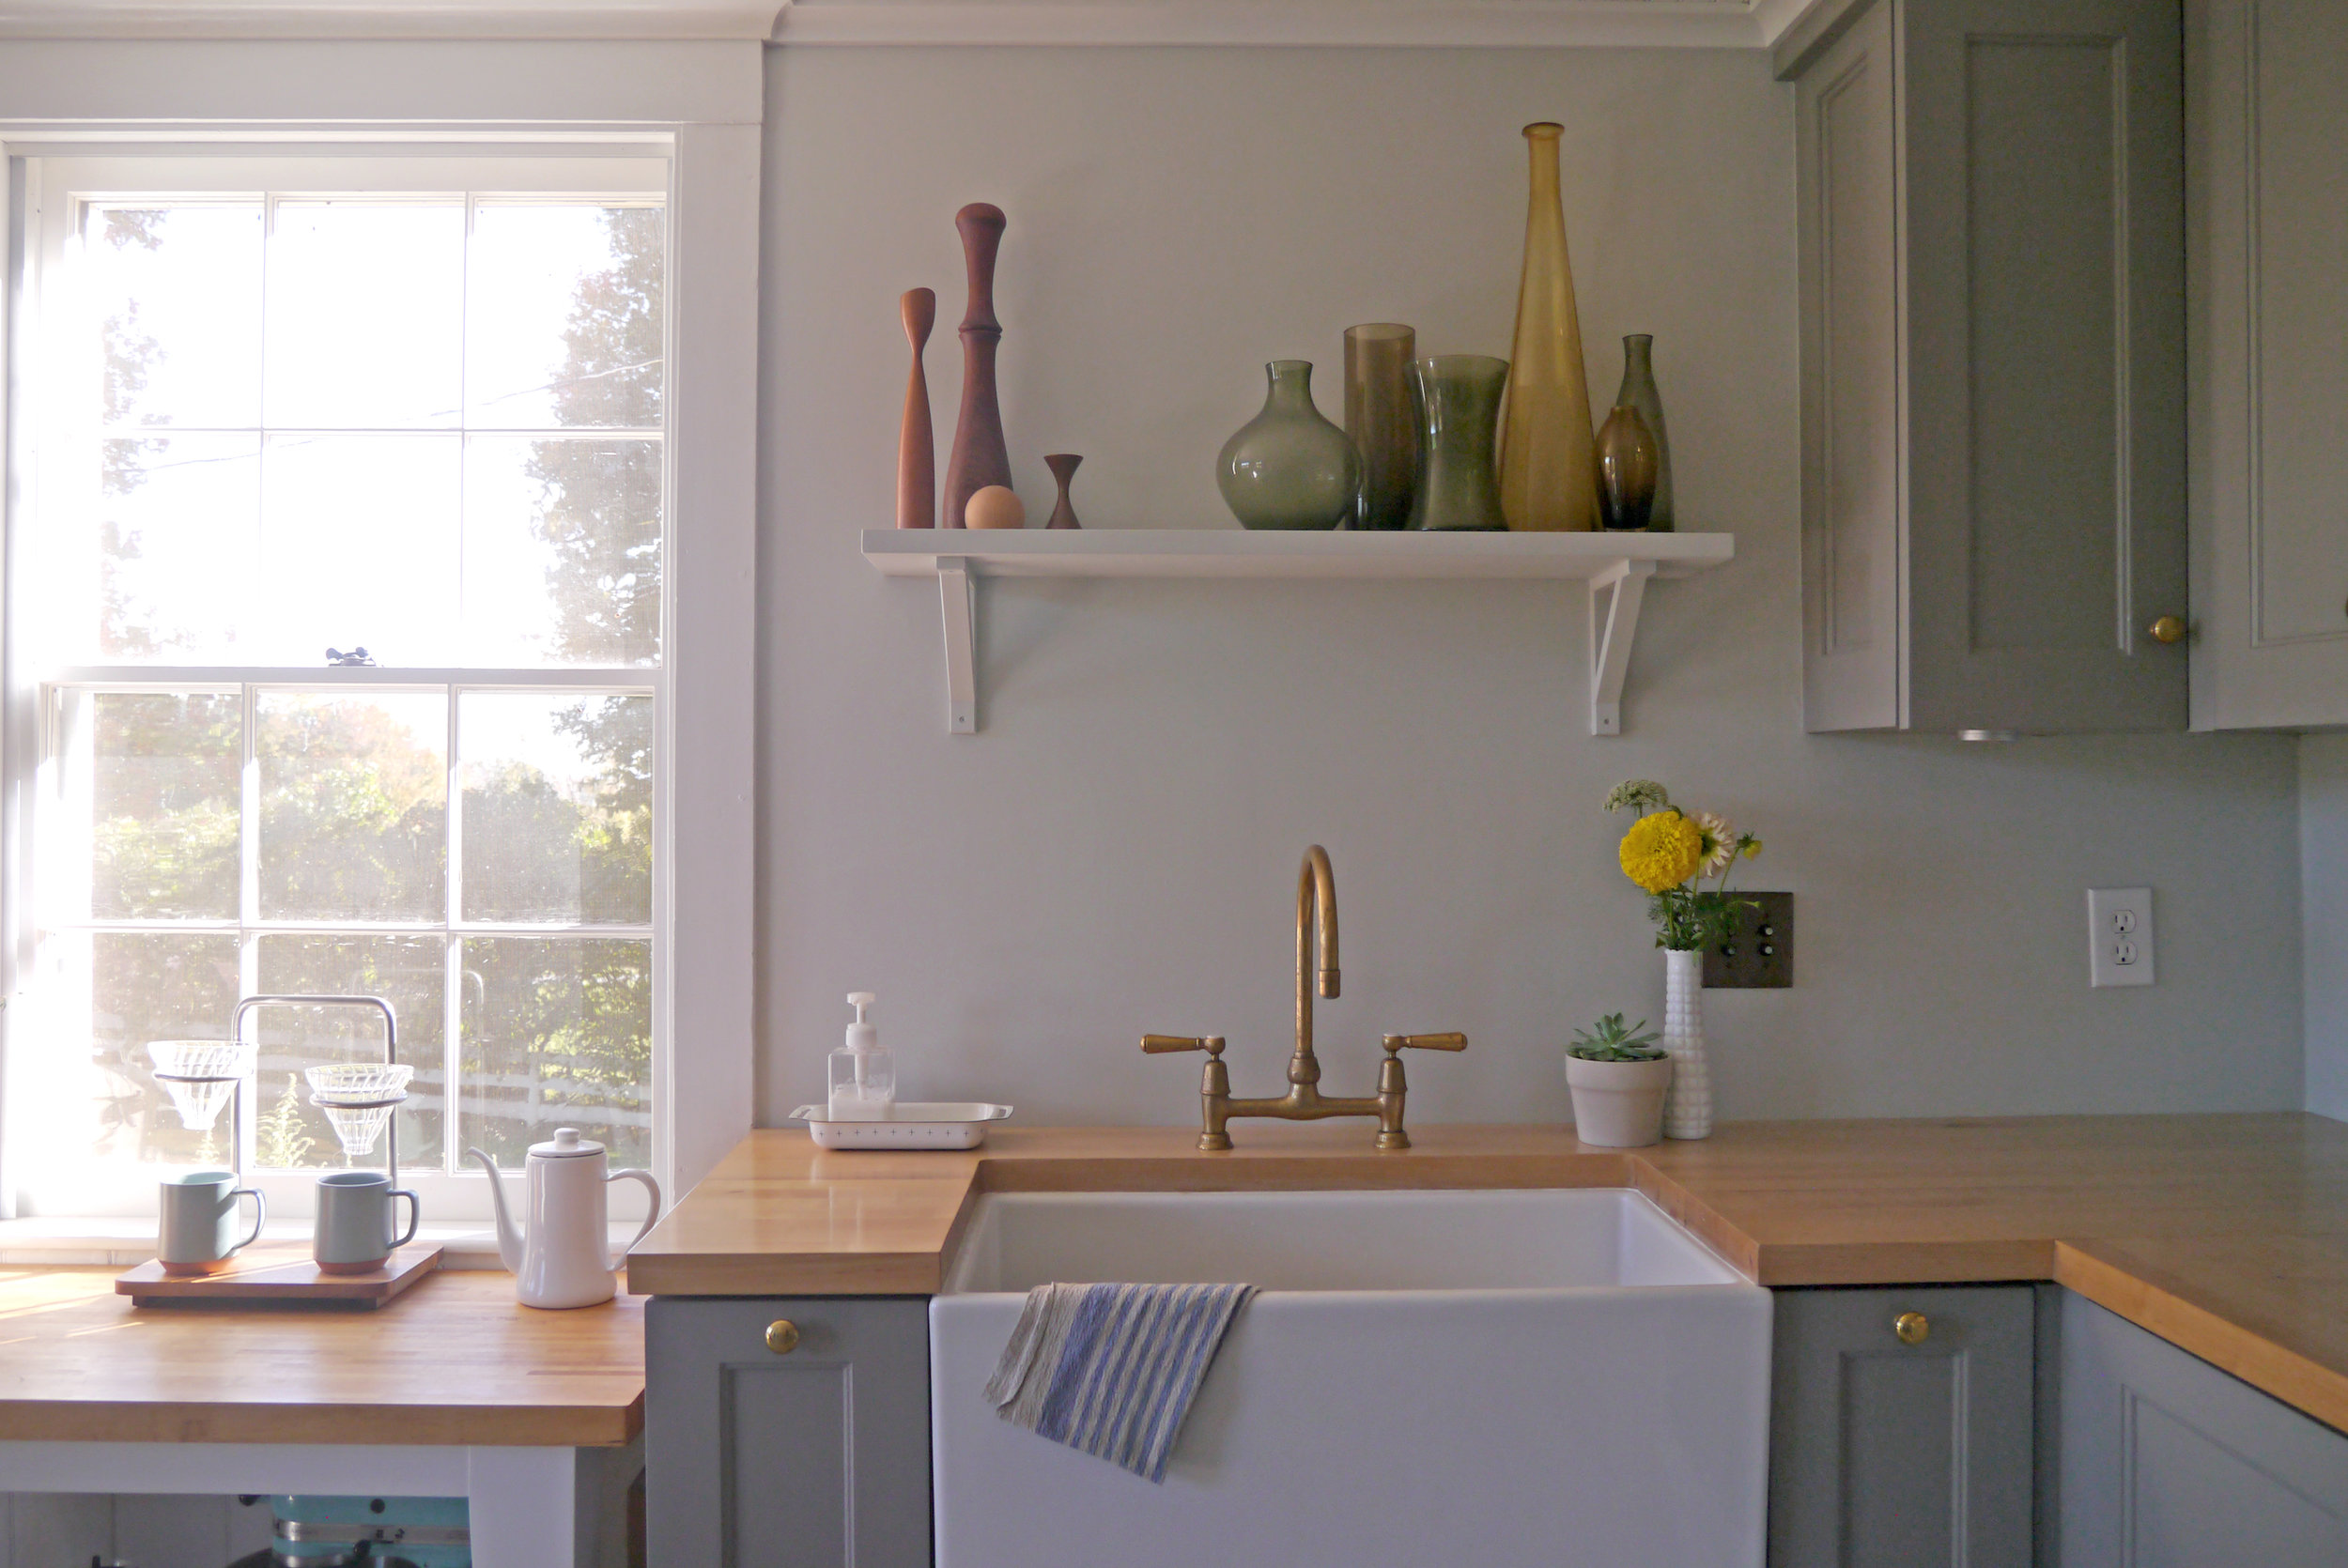 Kitchen - Large farmhouse sink